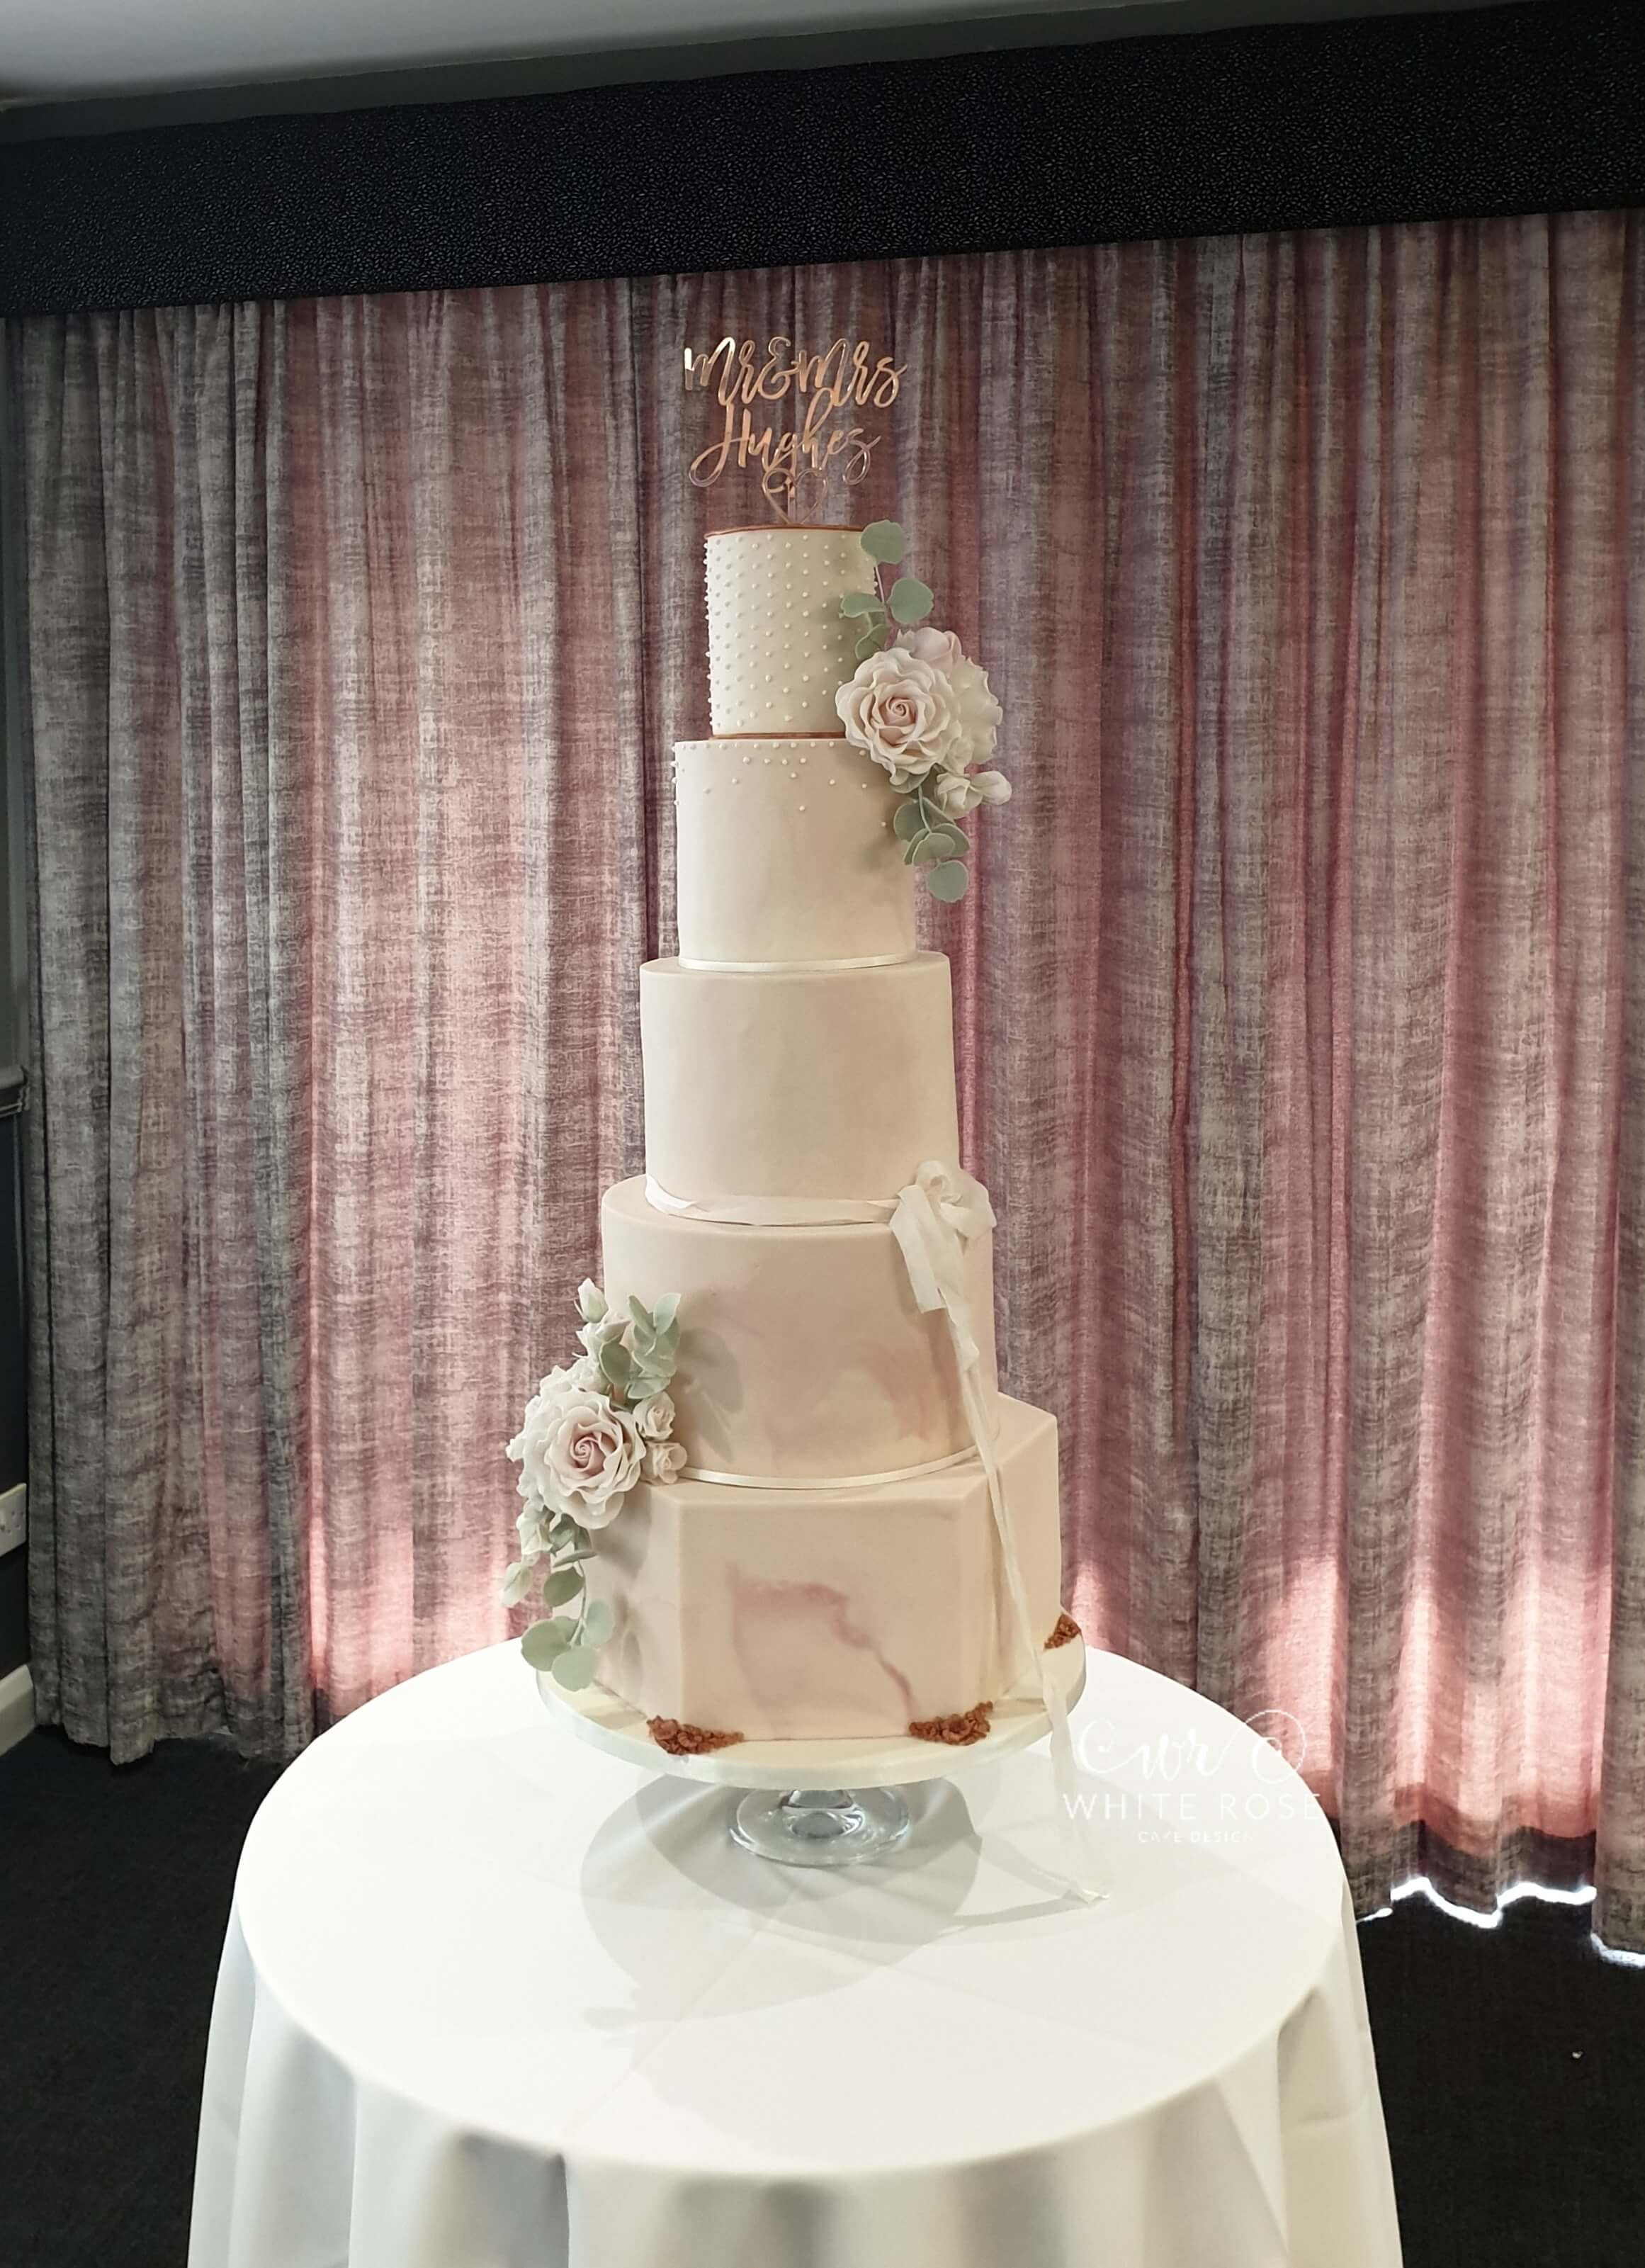 Modern Wedding Cake by White Rose Cake Design Luxury Wedding Cakes in West Yorkshire